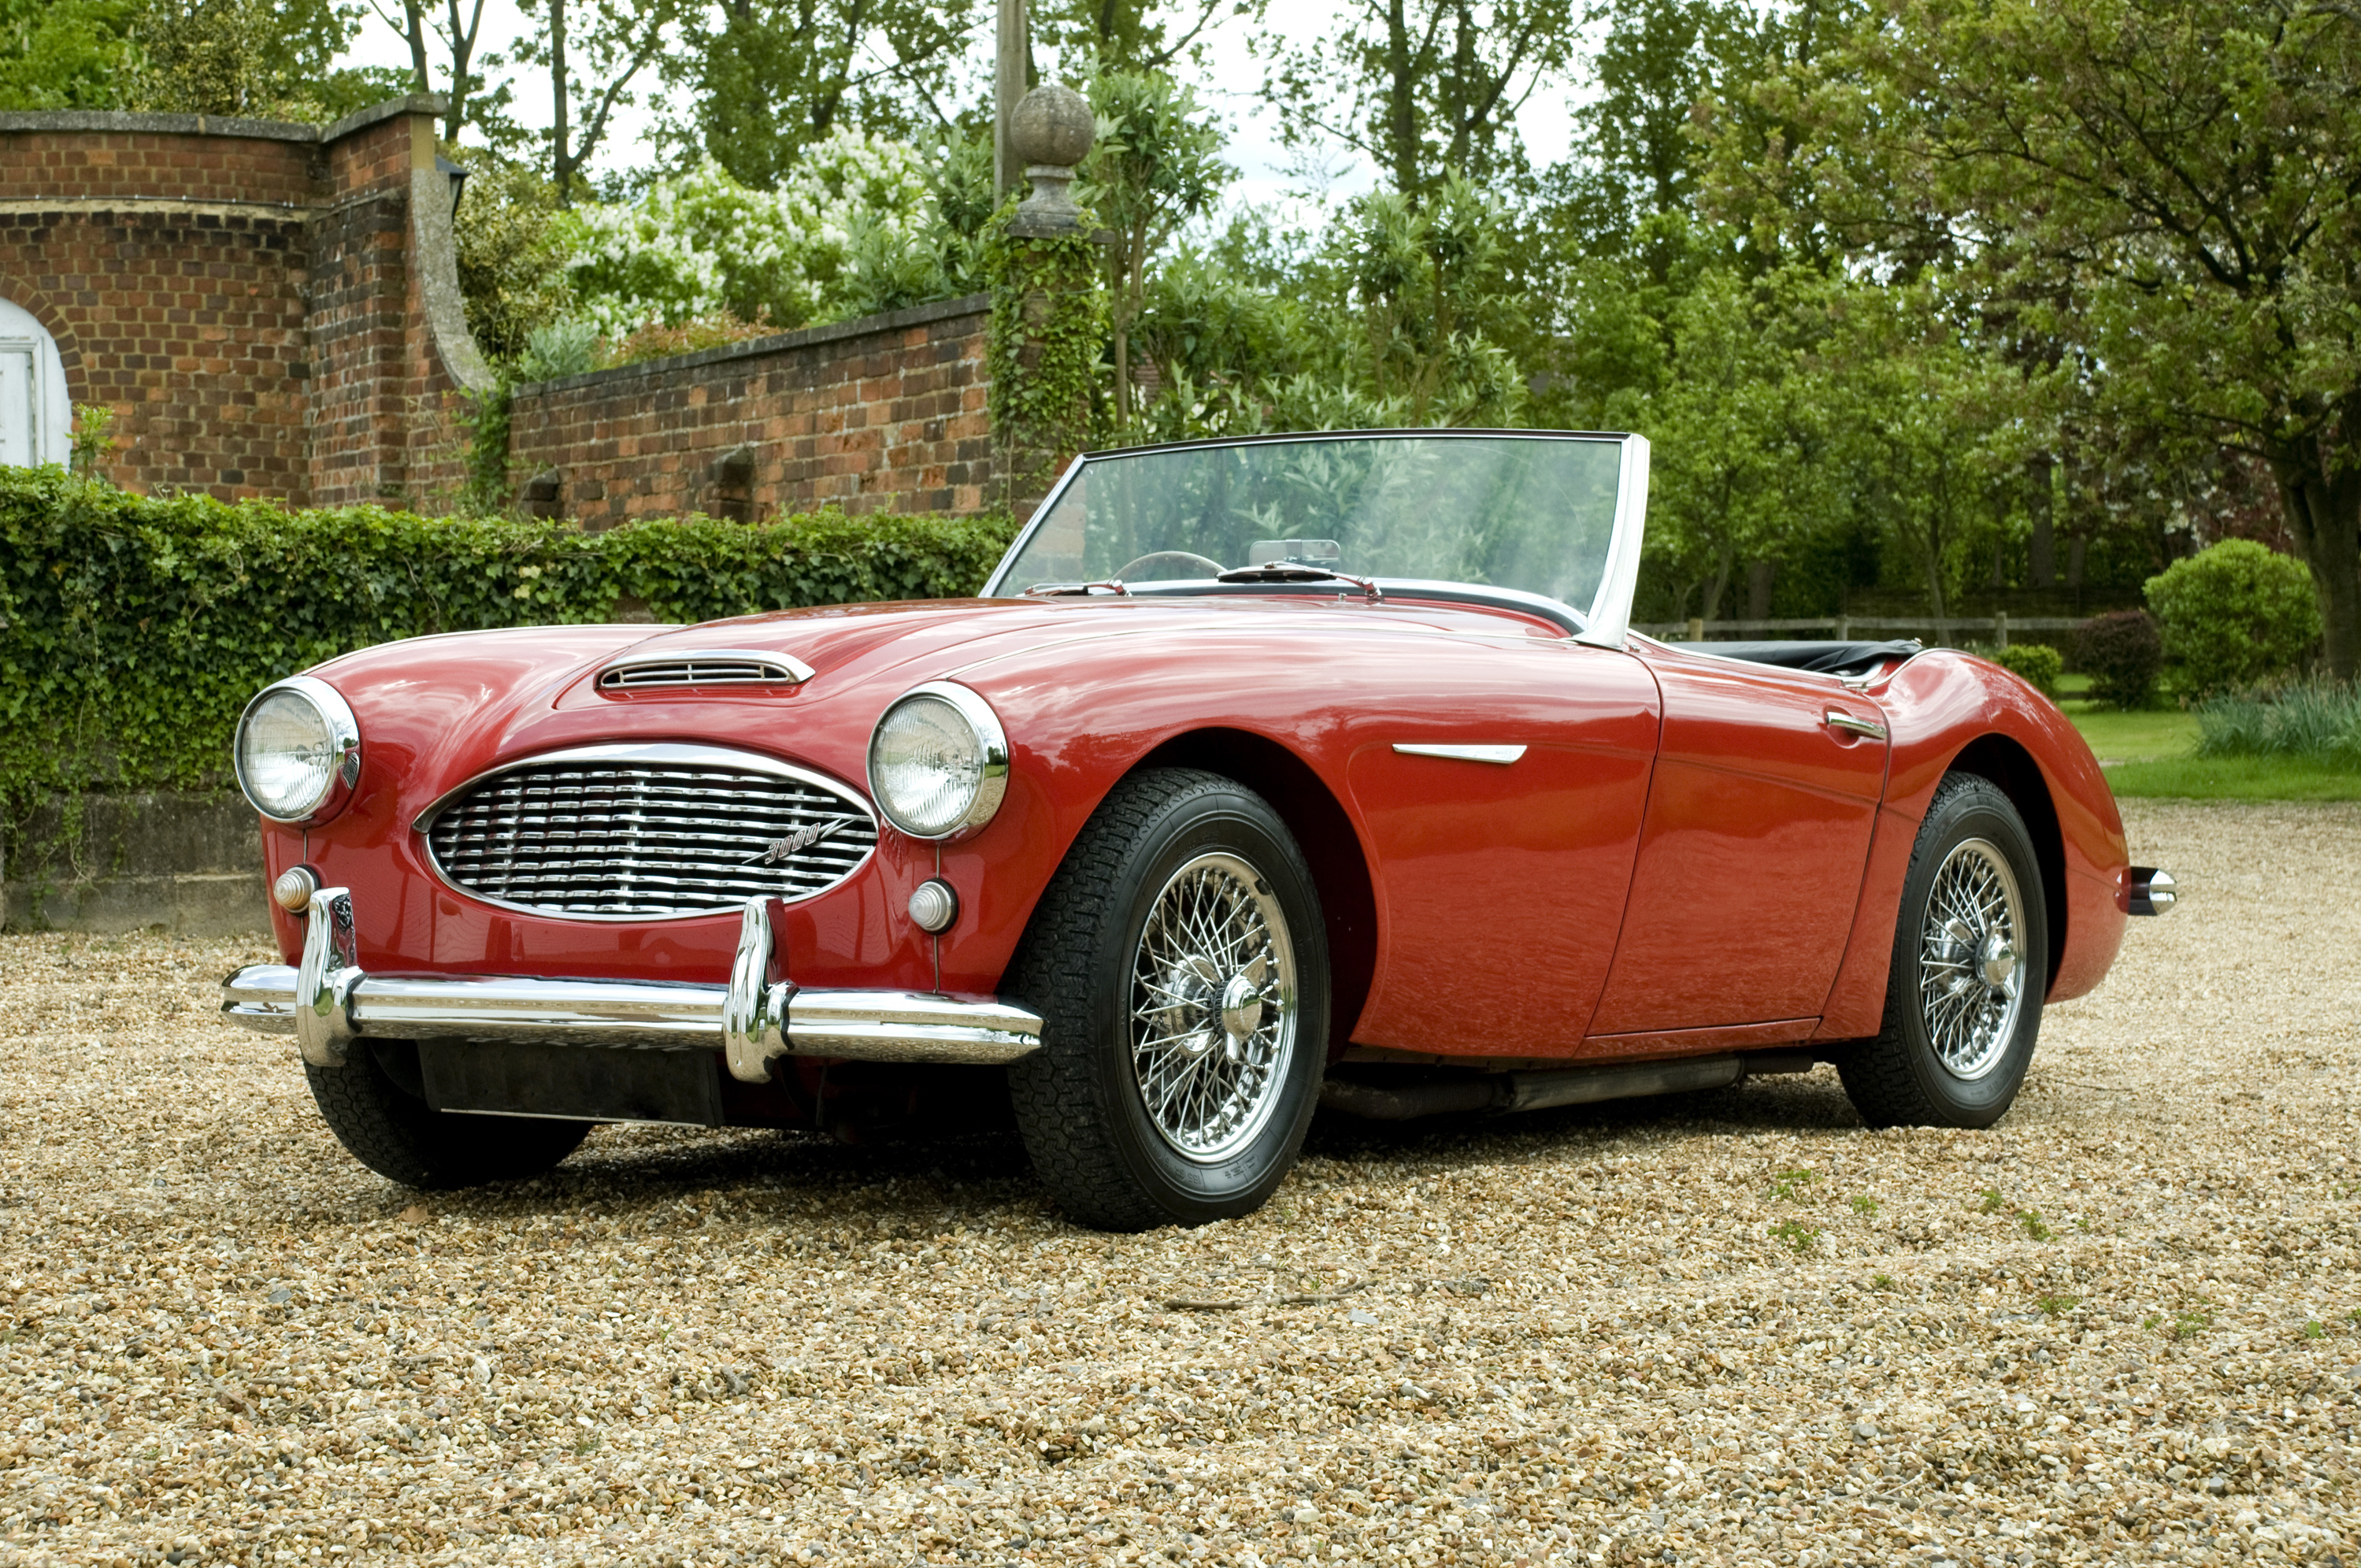 A convertible red Austin Healey parked on a gravel driveway